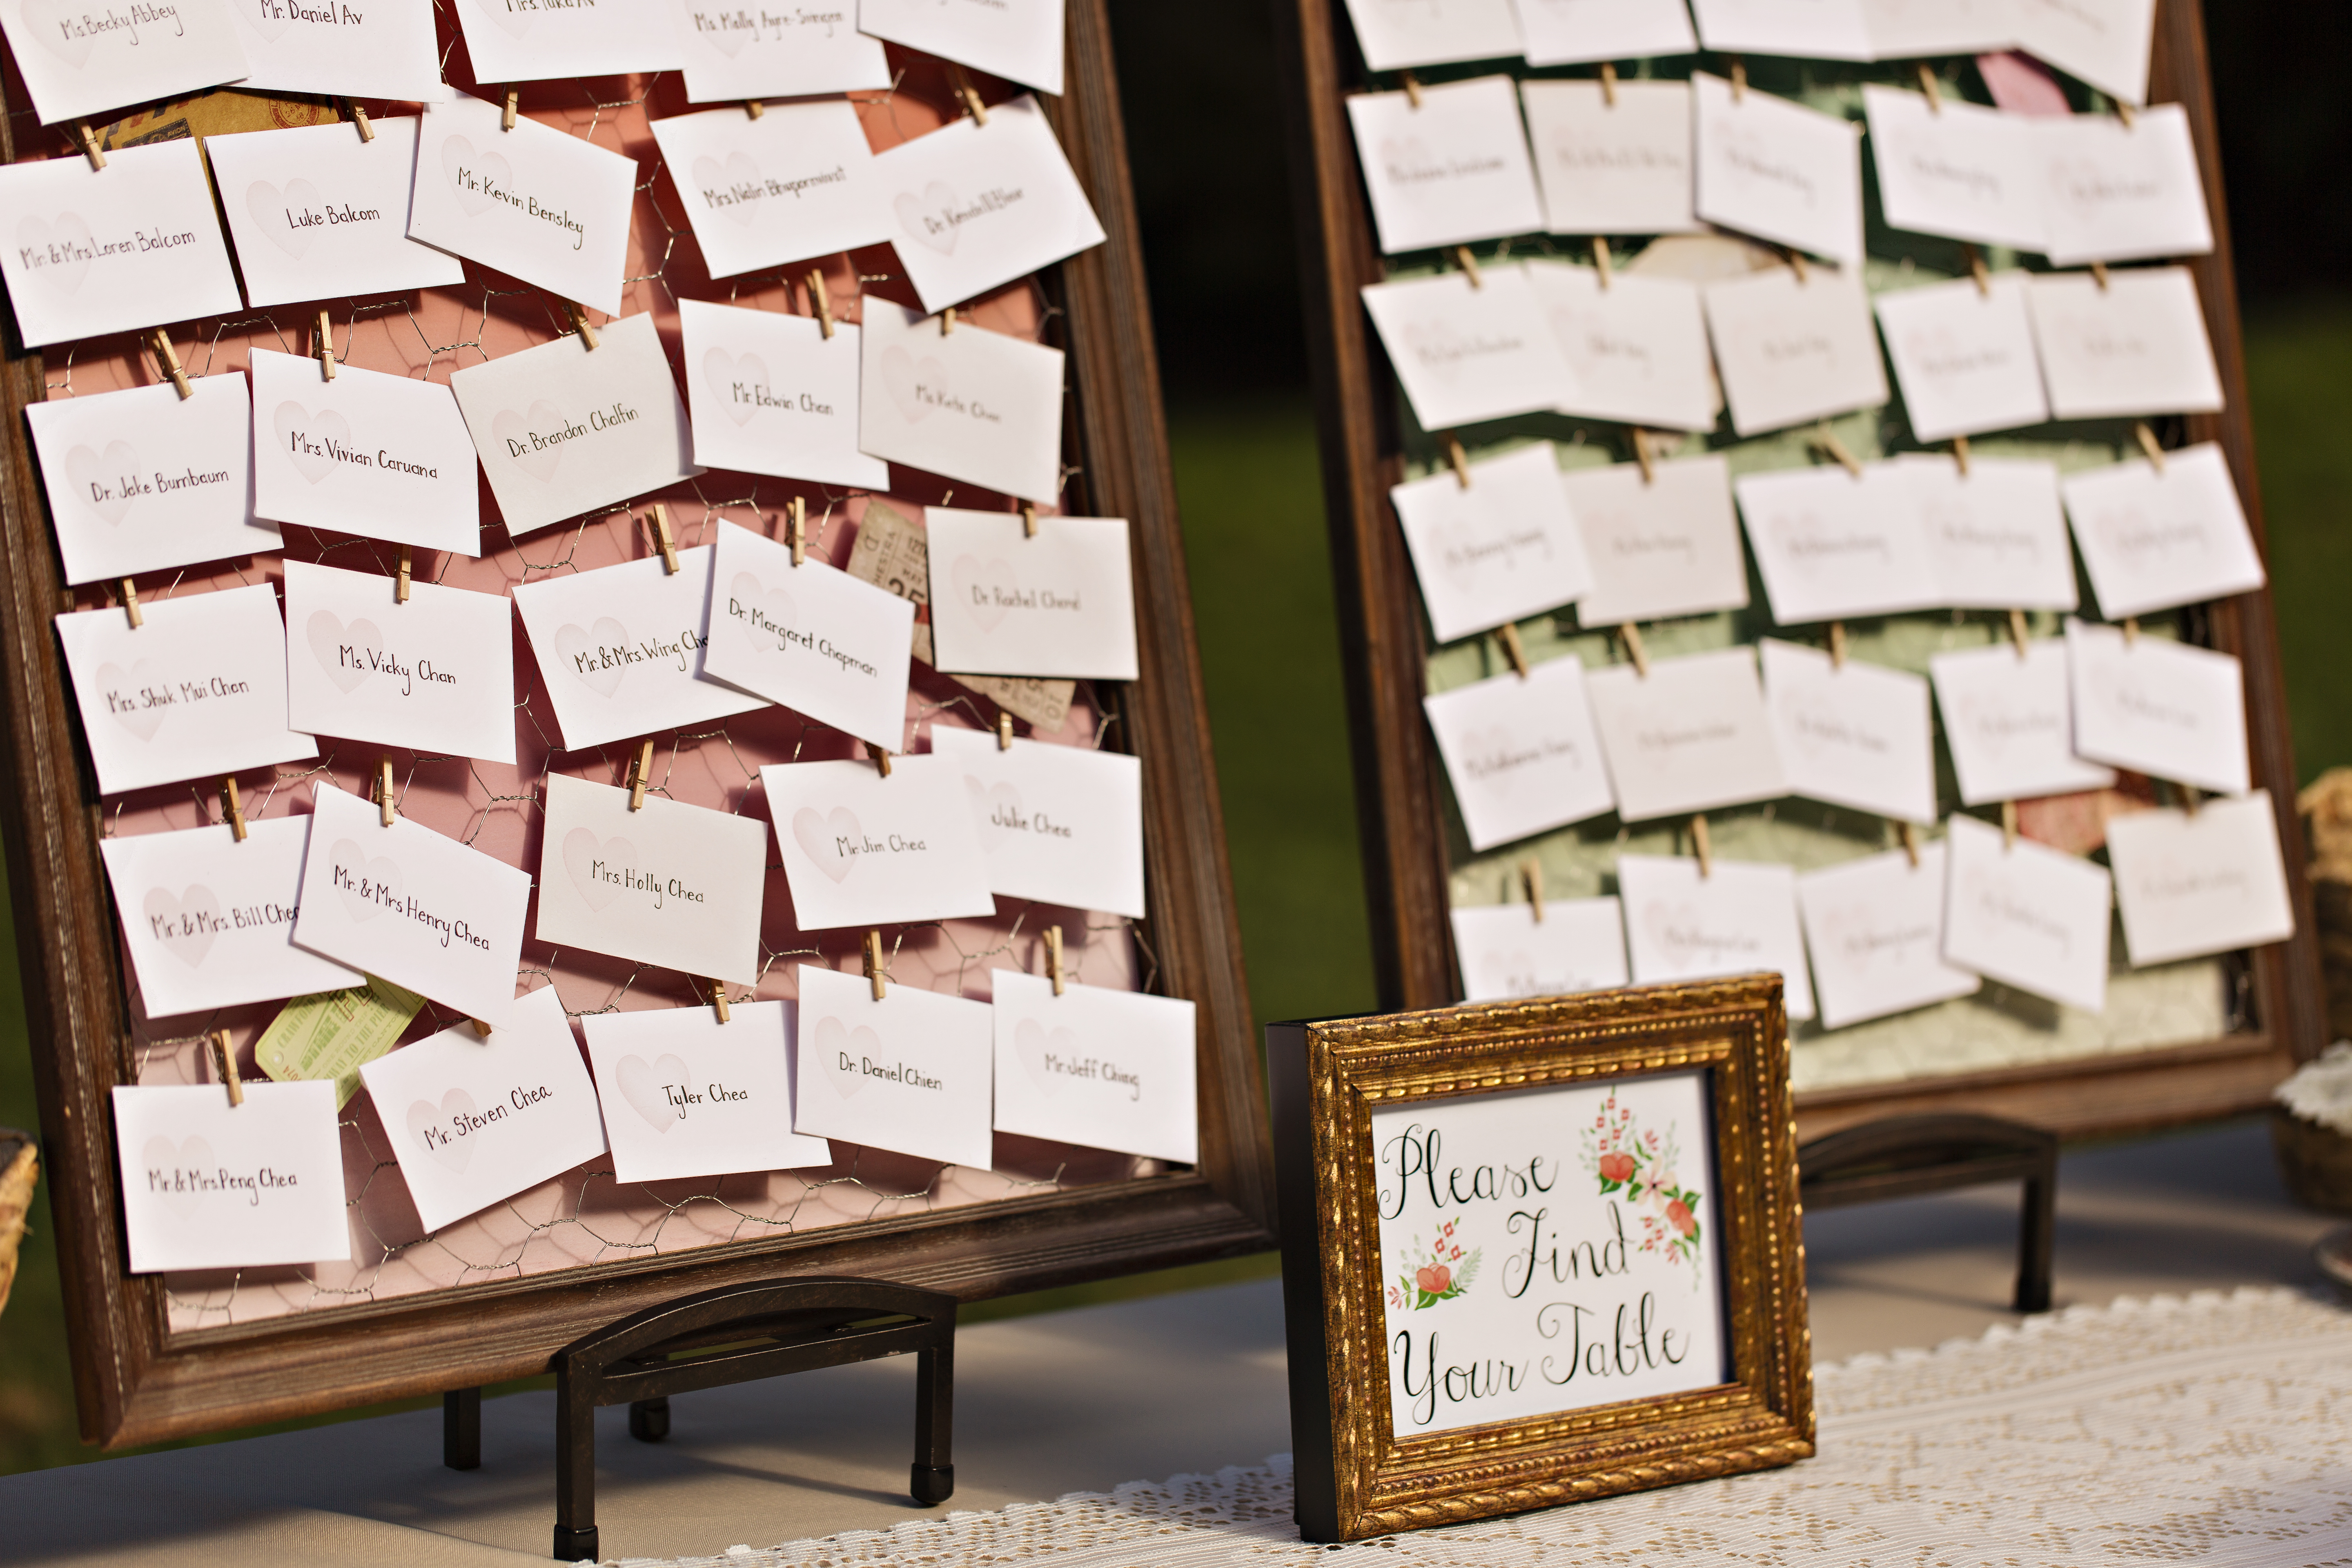 Robinswood House Wedding in Bellevue | Whimsical escort card layout with chicken wire | Perfectly Posh Events, Seattle Wedding Planner | Courtney Bowlden Photography